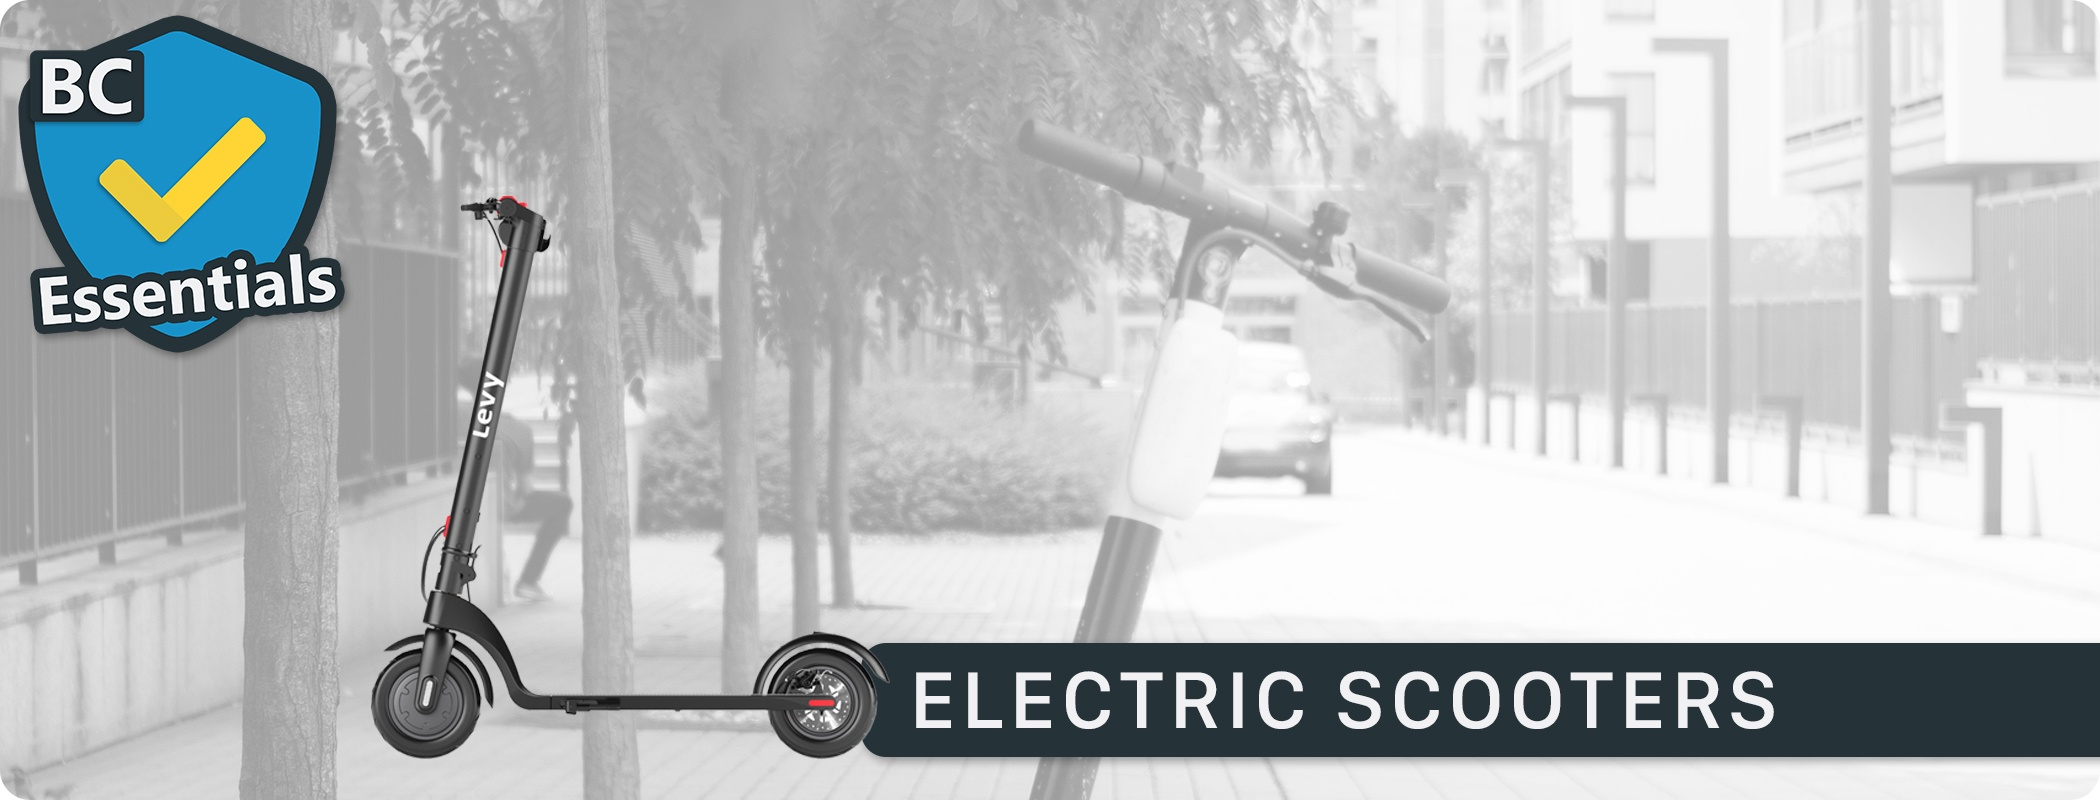 Essentials Electric Scooters